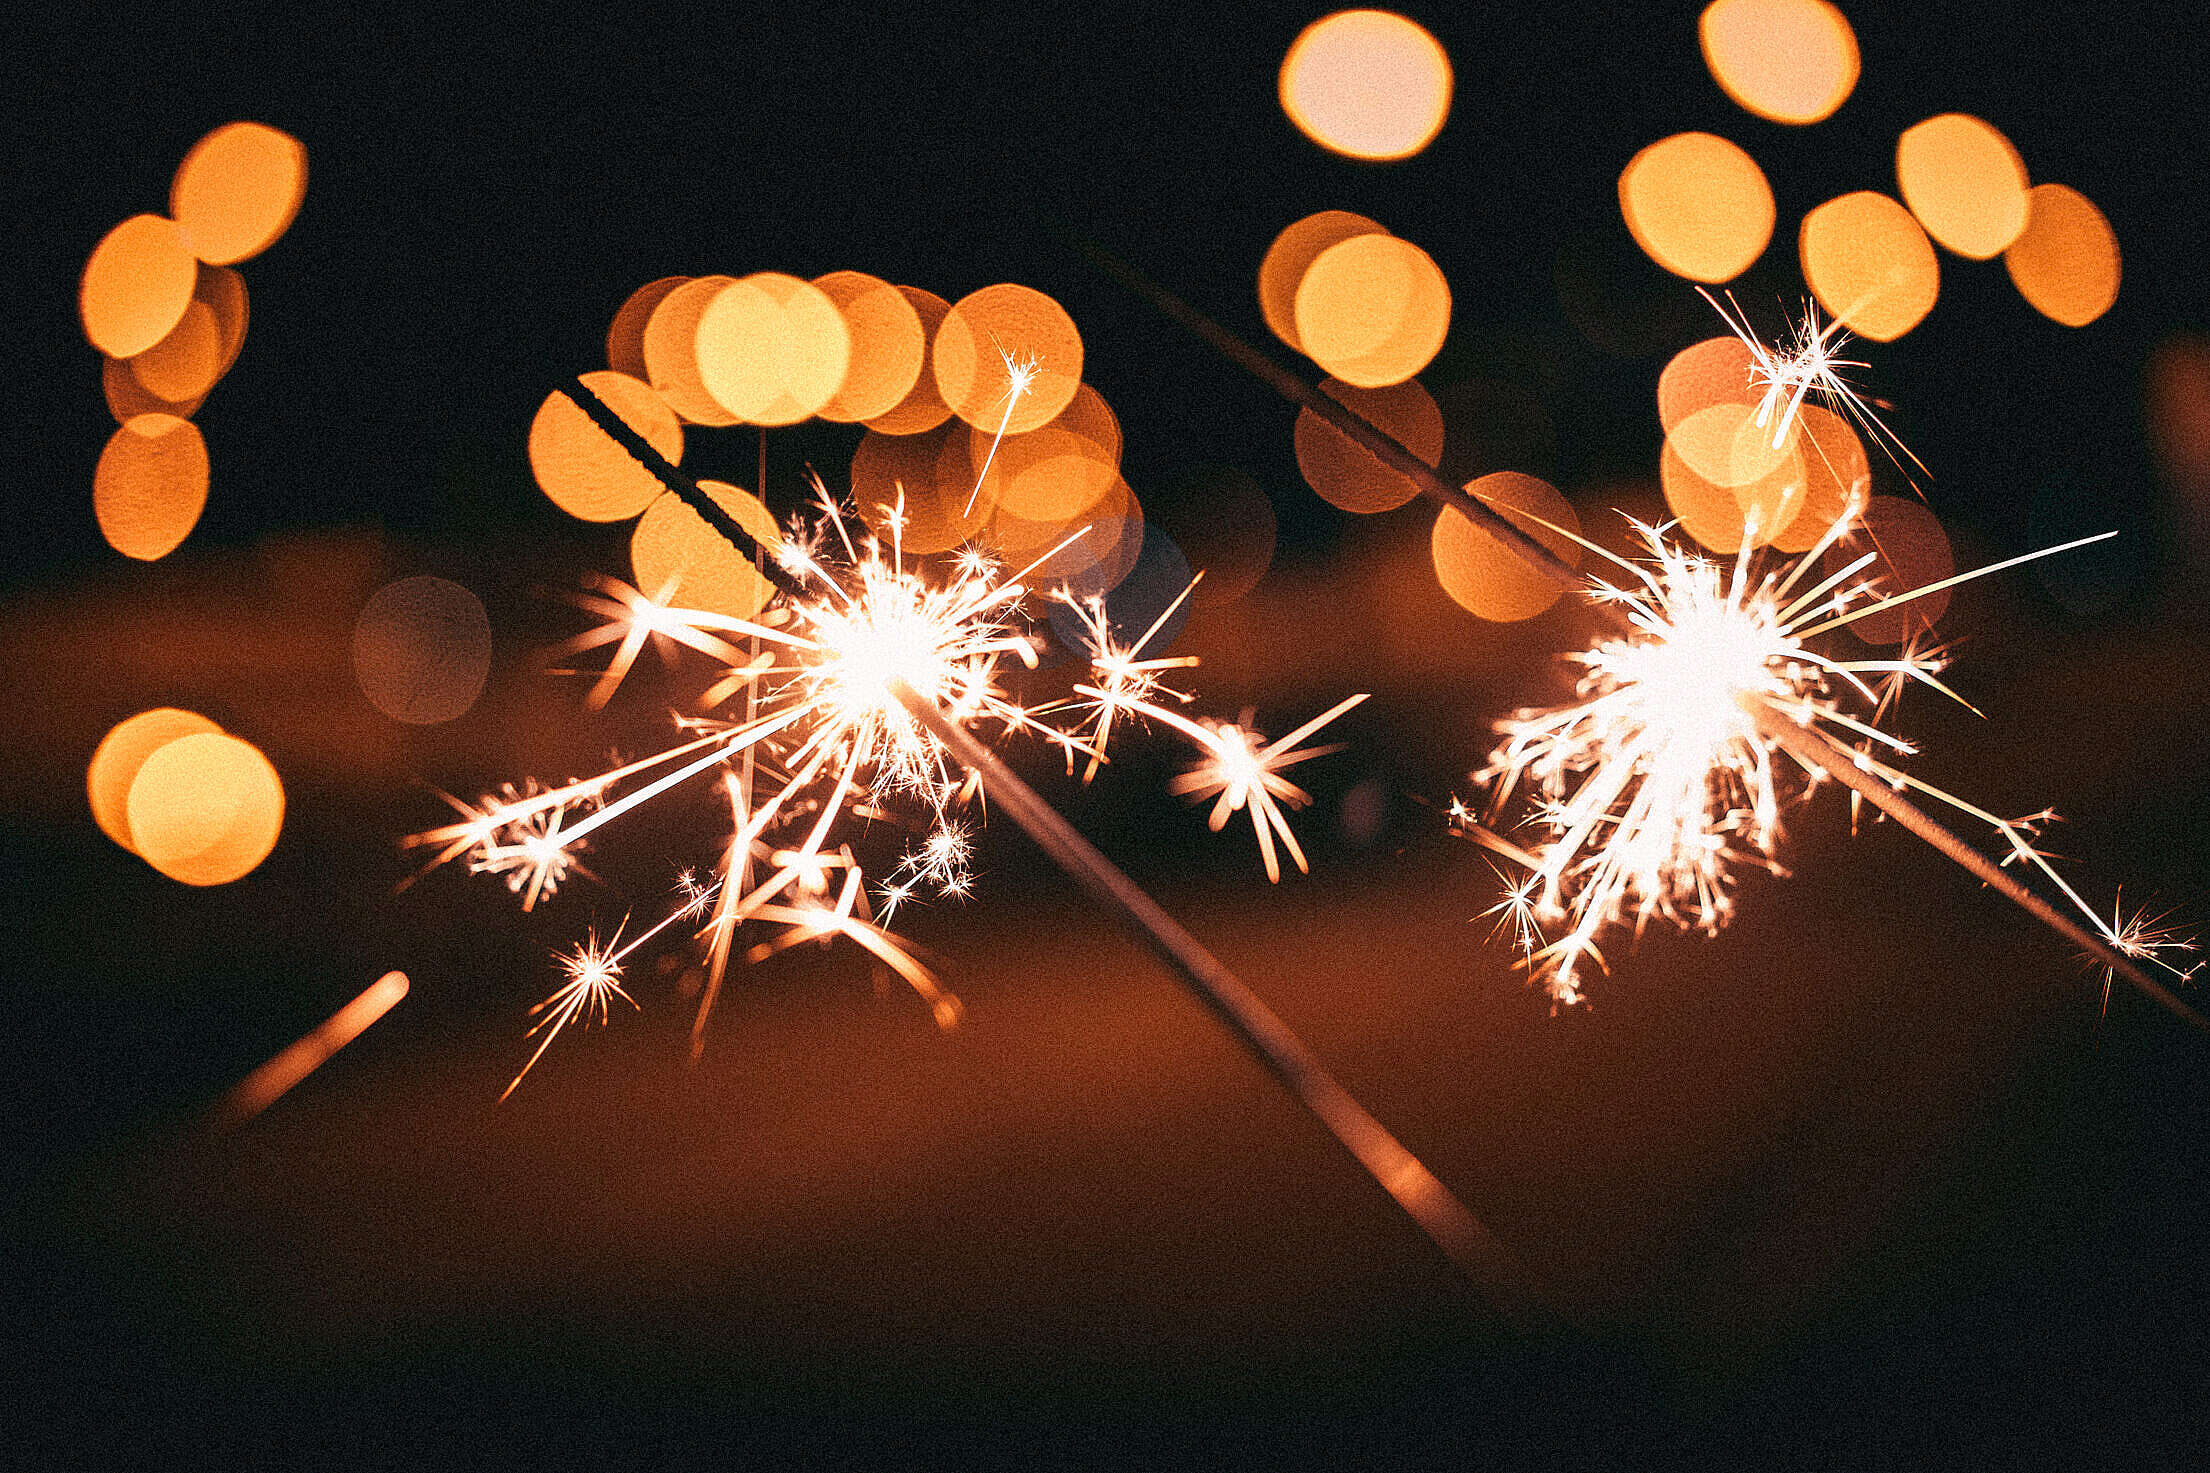 Sparklers Happy New Year Party Free Stock Photo